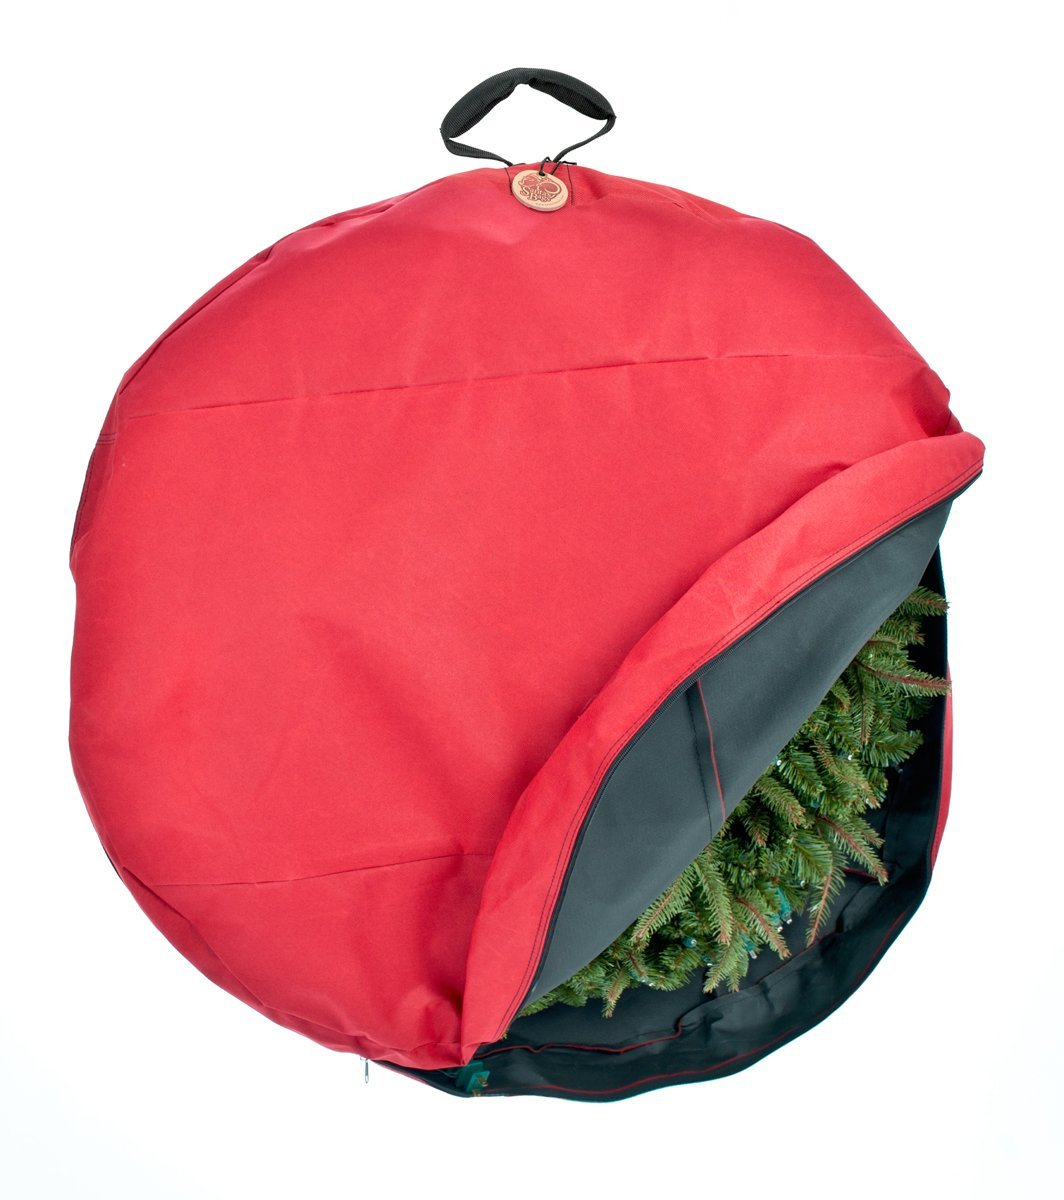 Christmas wreath heavy duty storage bag with handle to hang.